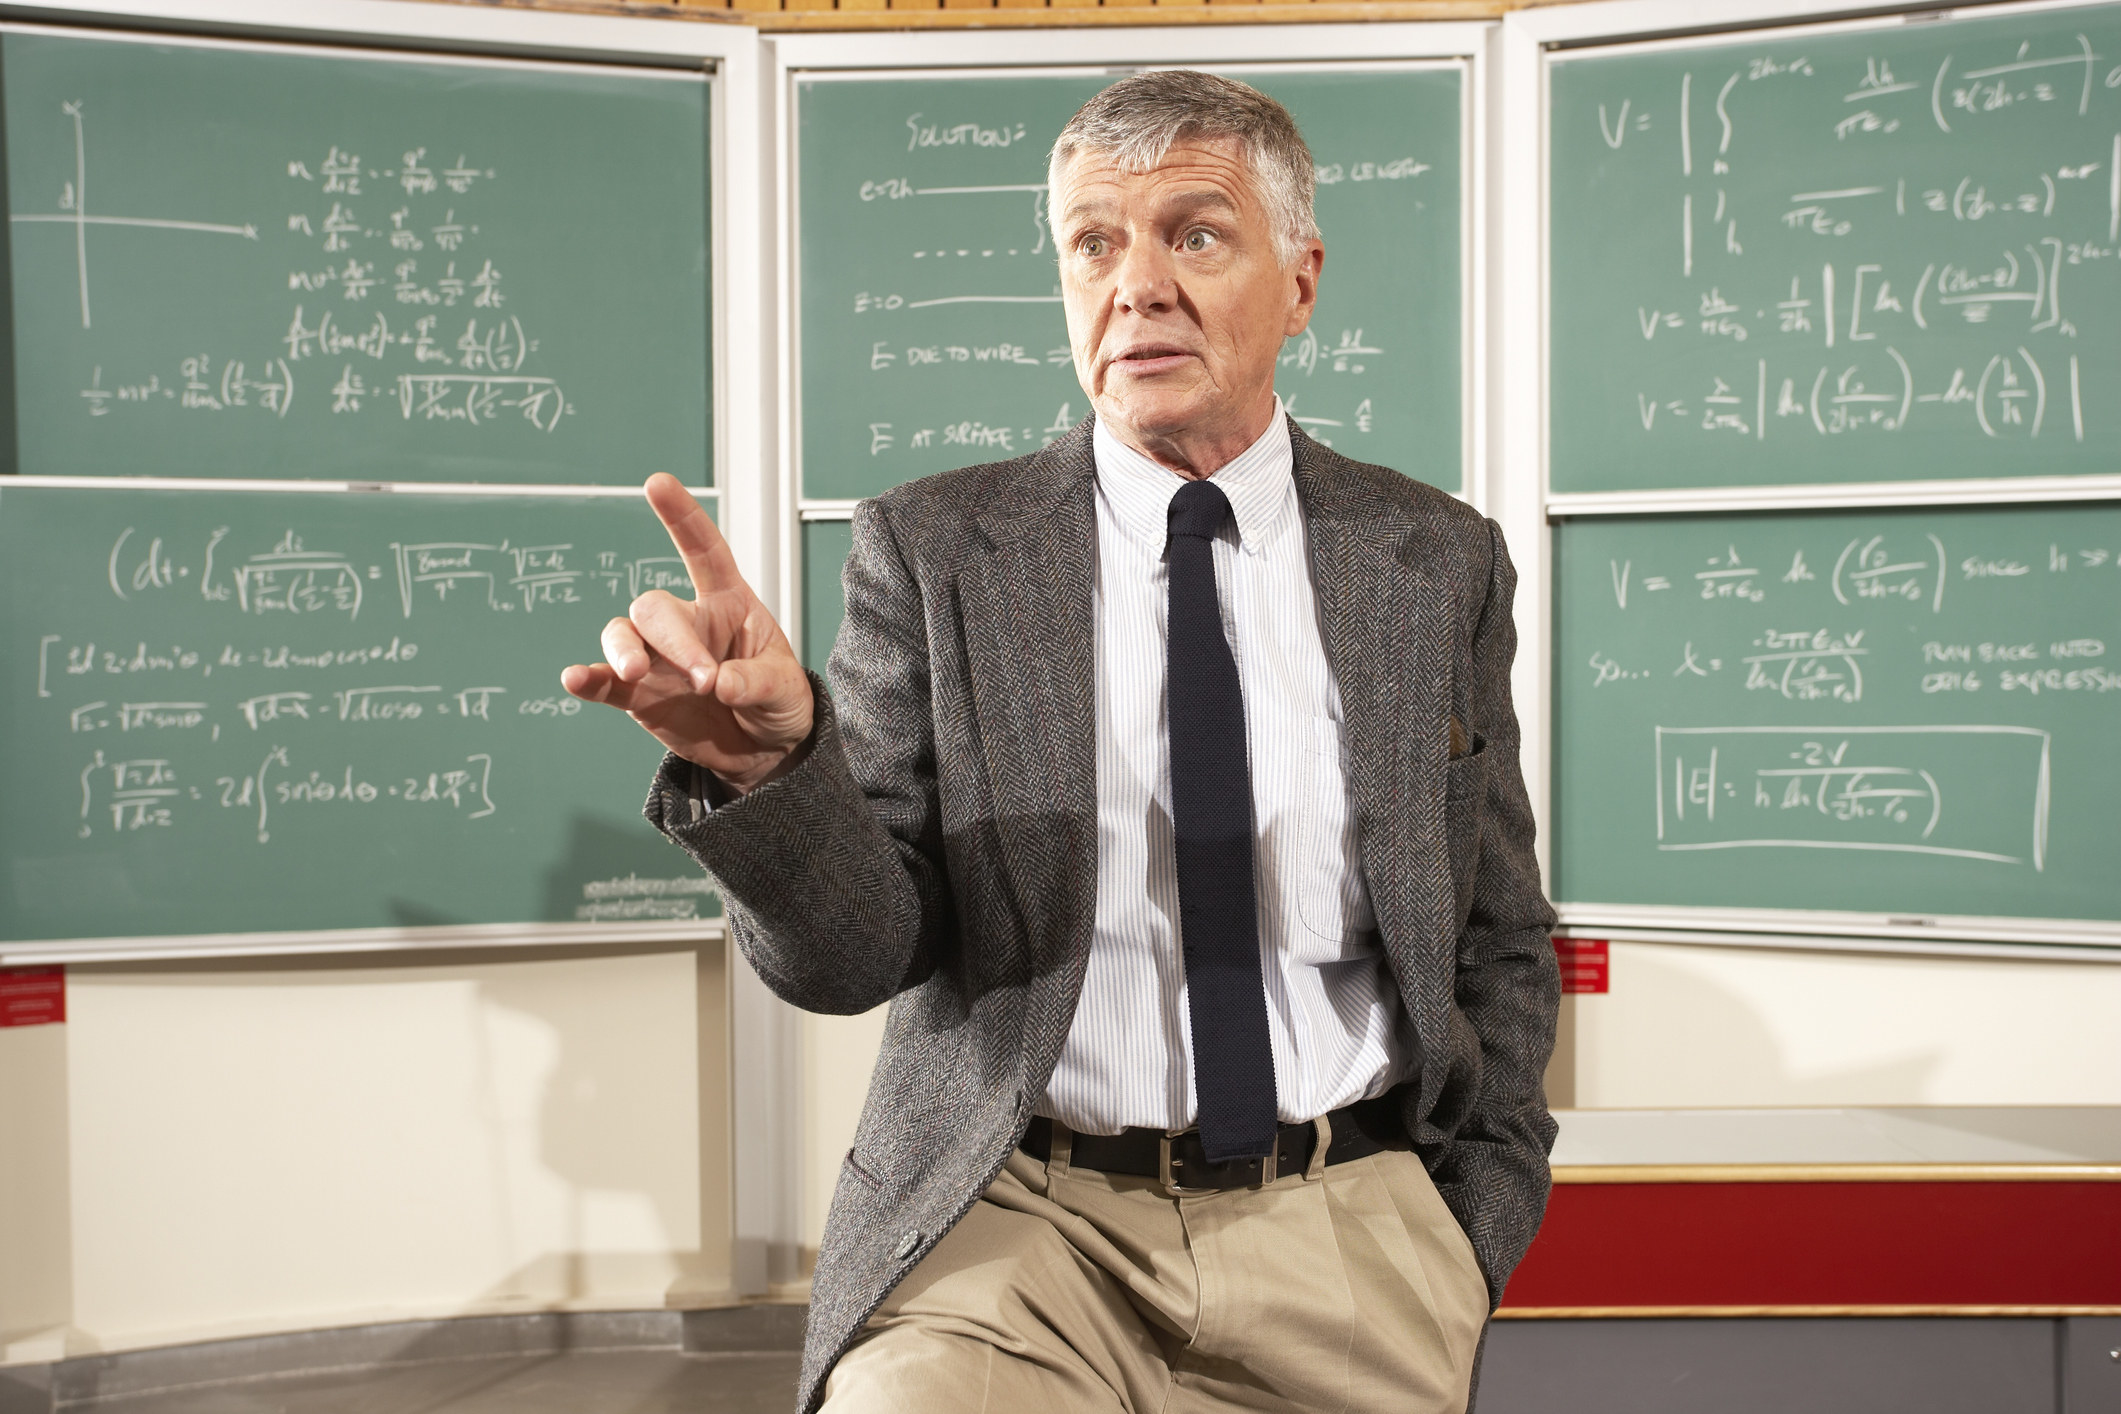 A professor standing in front of a classroom chalkboard